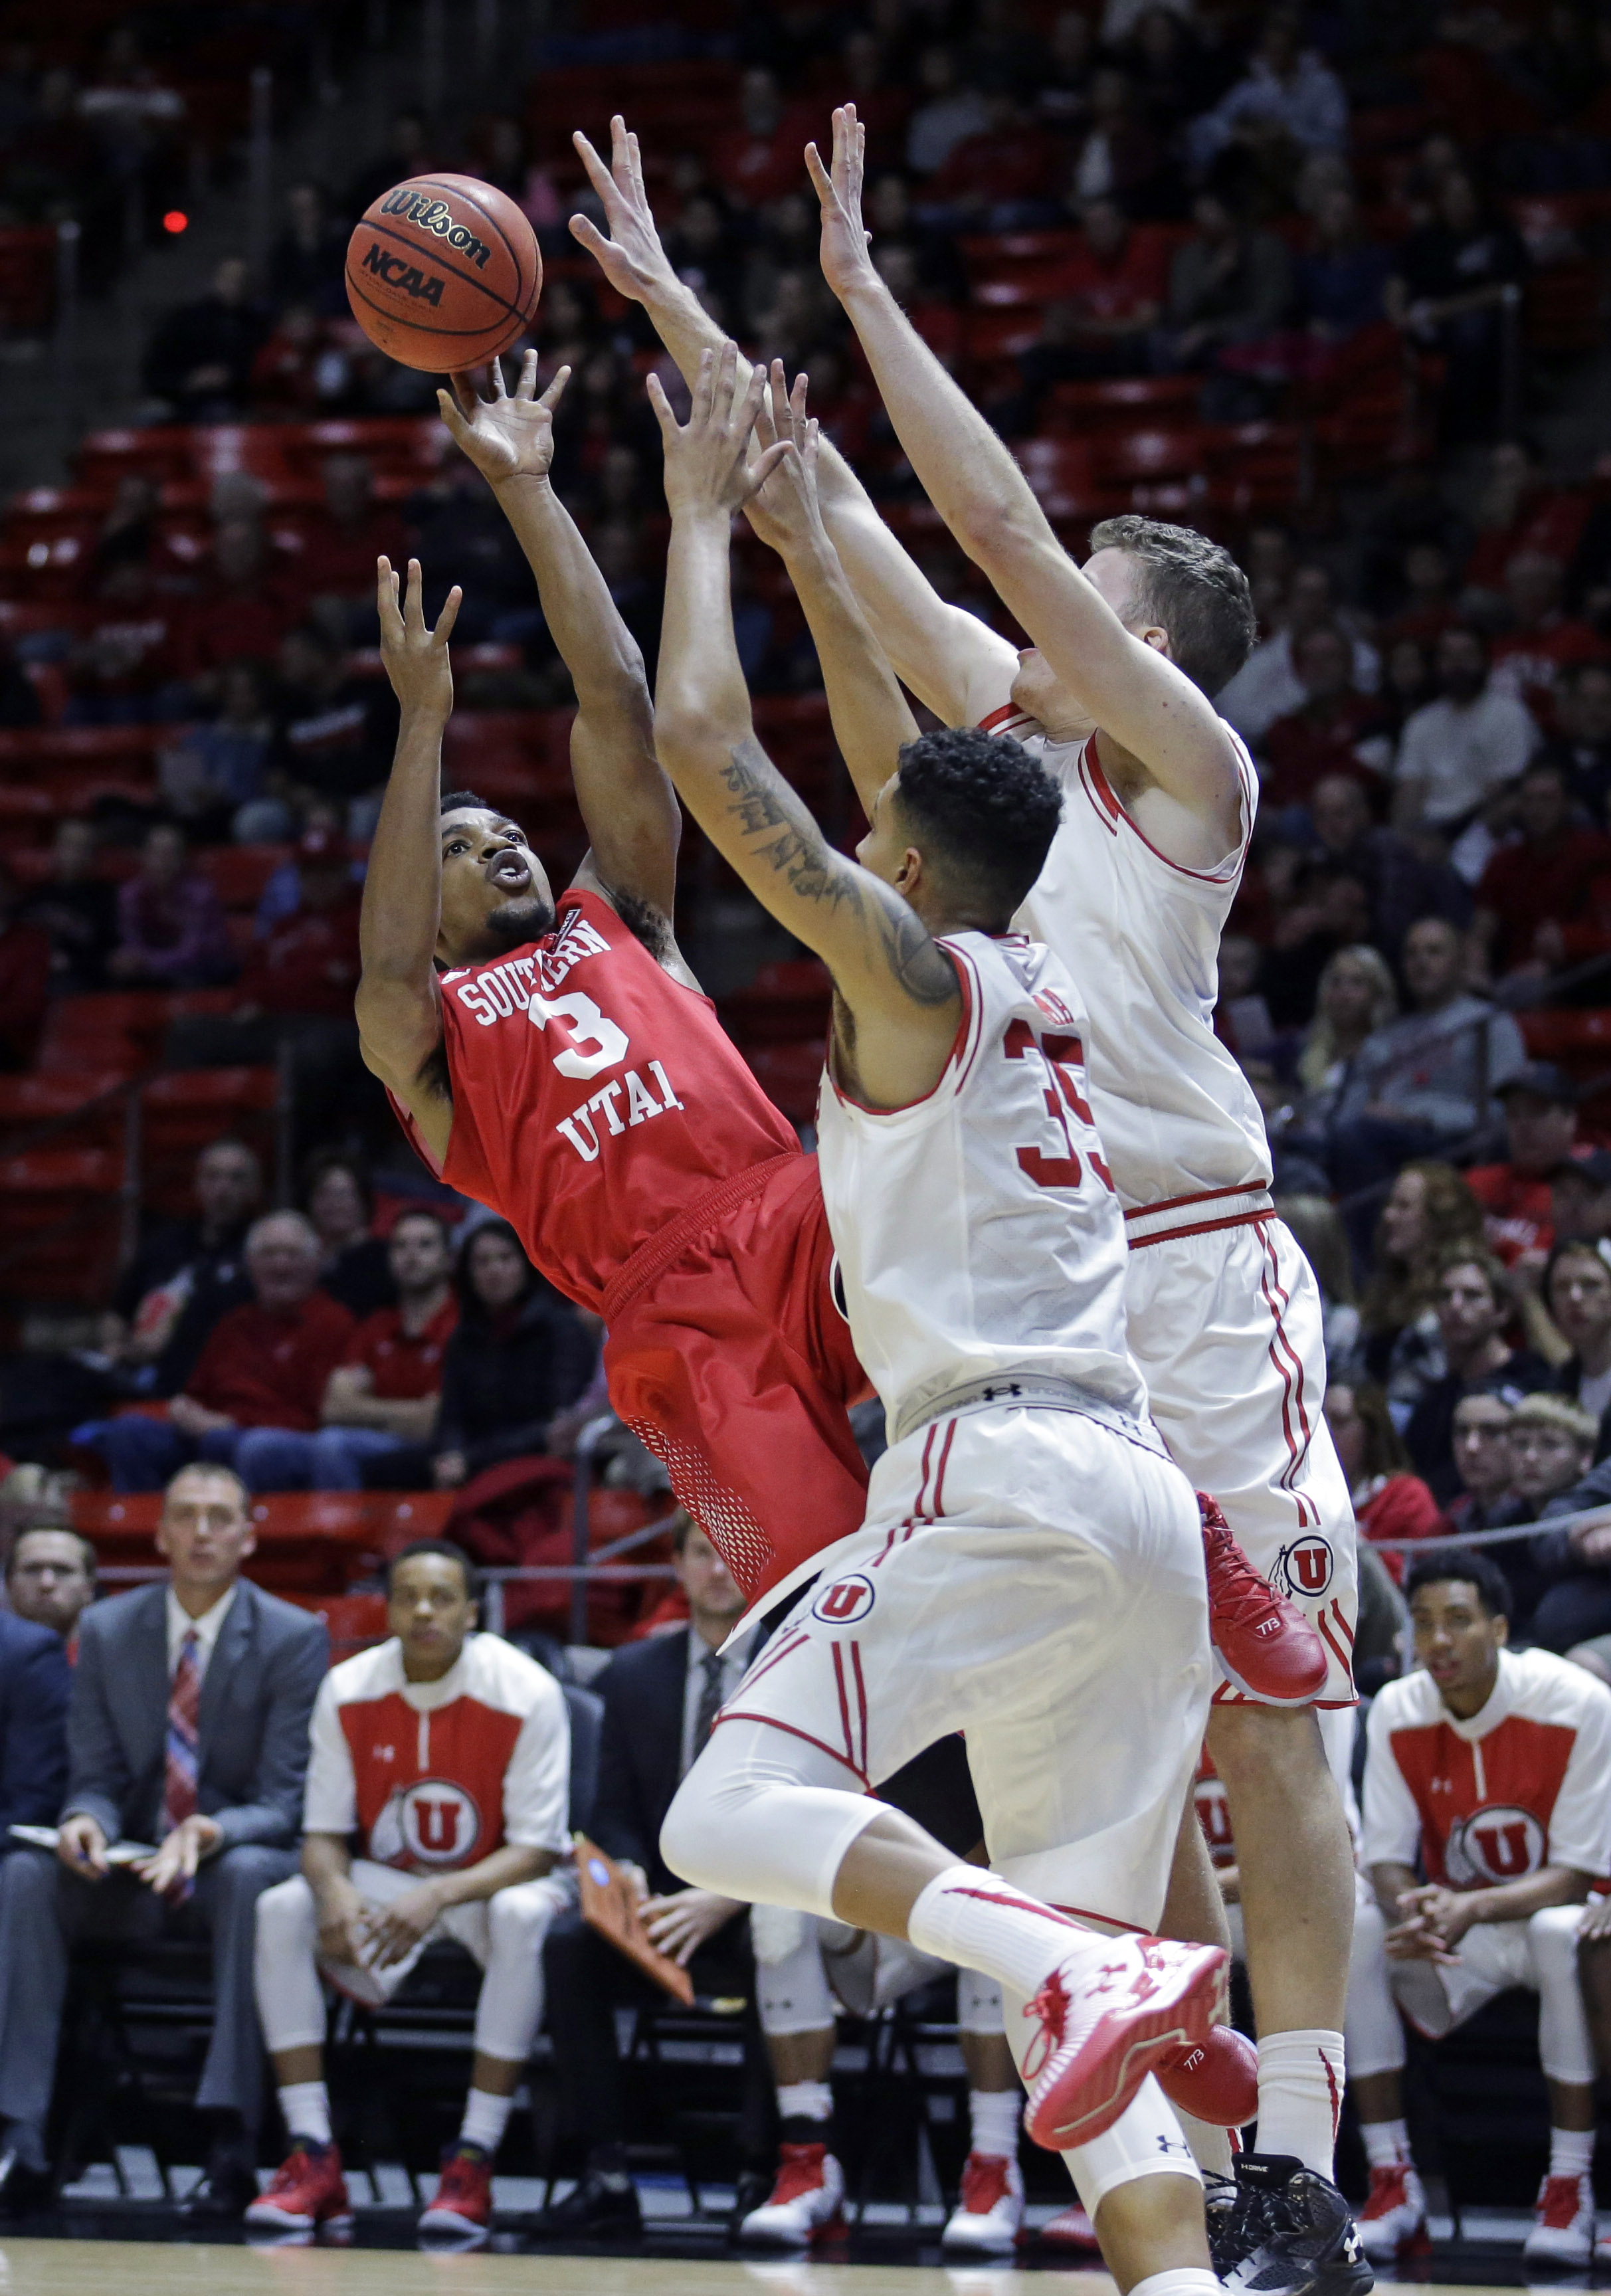 Southern Utah guard Travon Langston (3) shoots as Utah's Kyle Kuzma (35) and Jakob Poeltl, right, defend in first half during an NCAA college basketball game Friday, Nov. 13, 2015, in Salt Lake City. (AP Photo/Rick Bowmer)